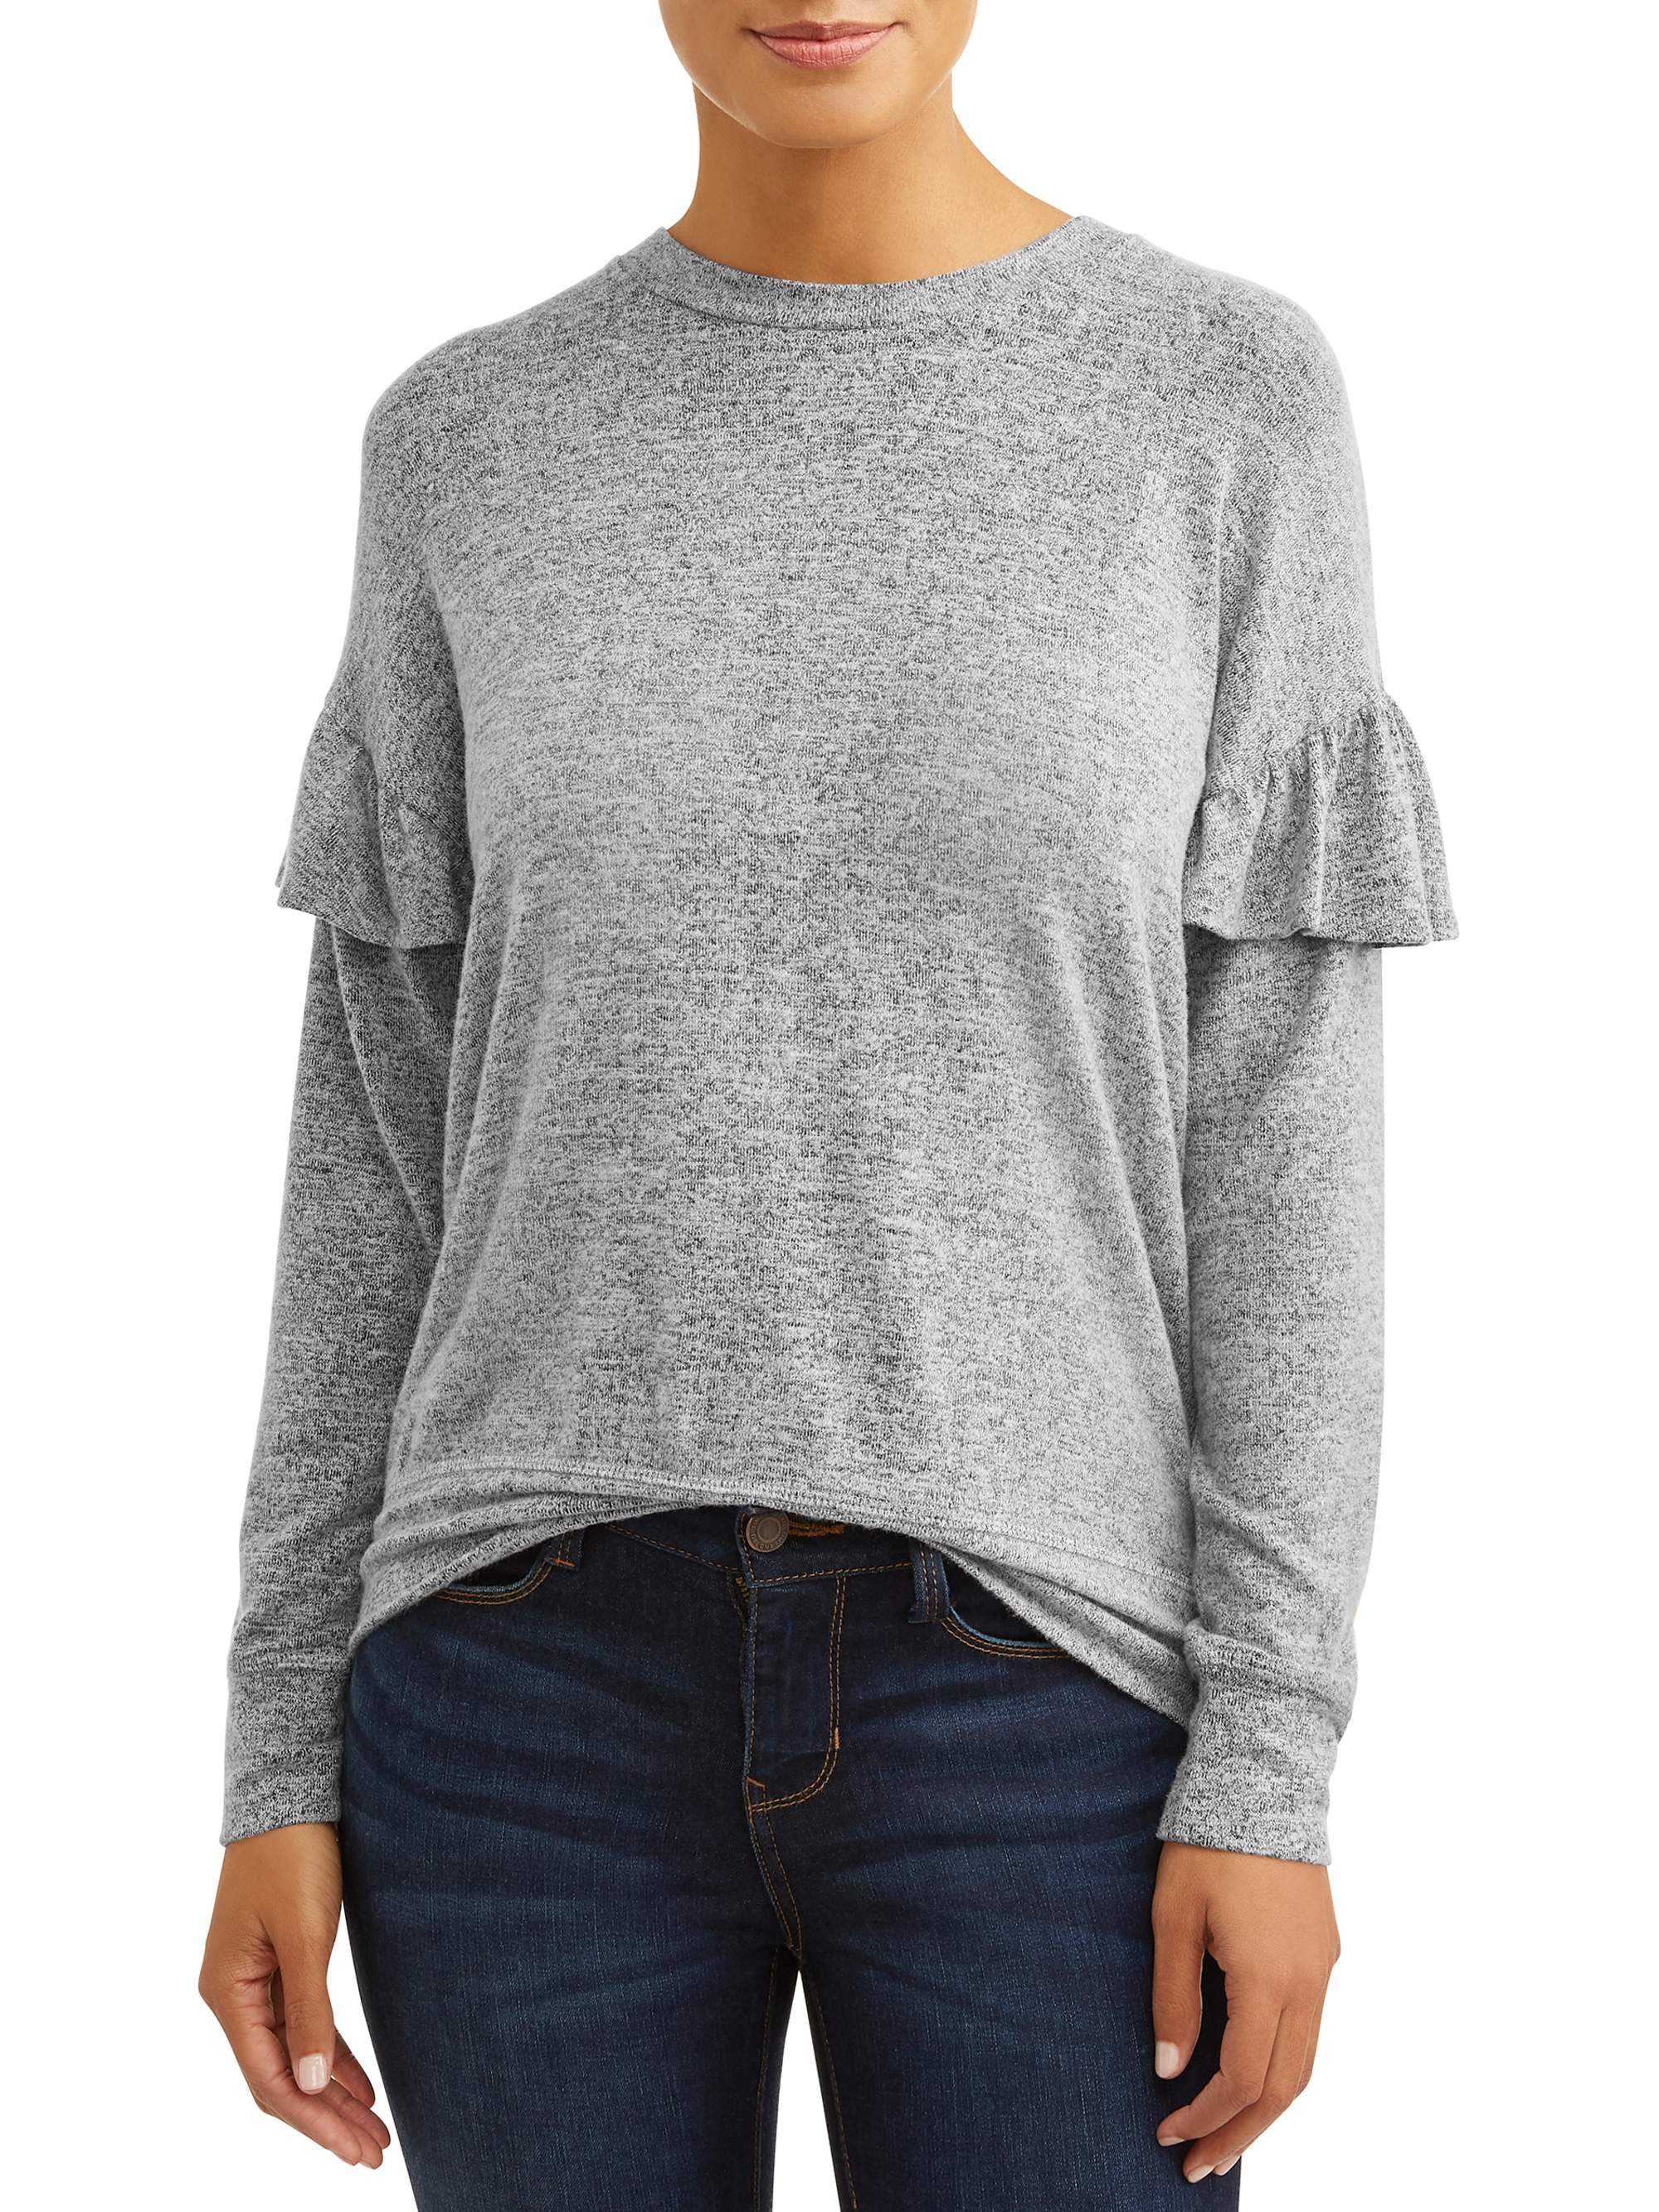 Women's Ruffle Trim Pullover Sweater